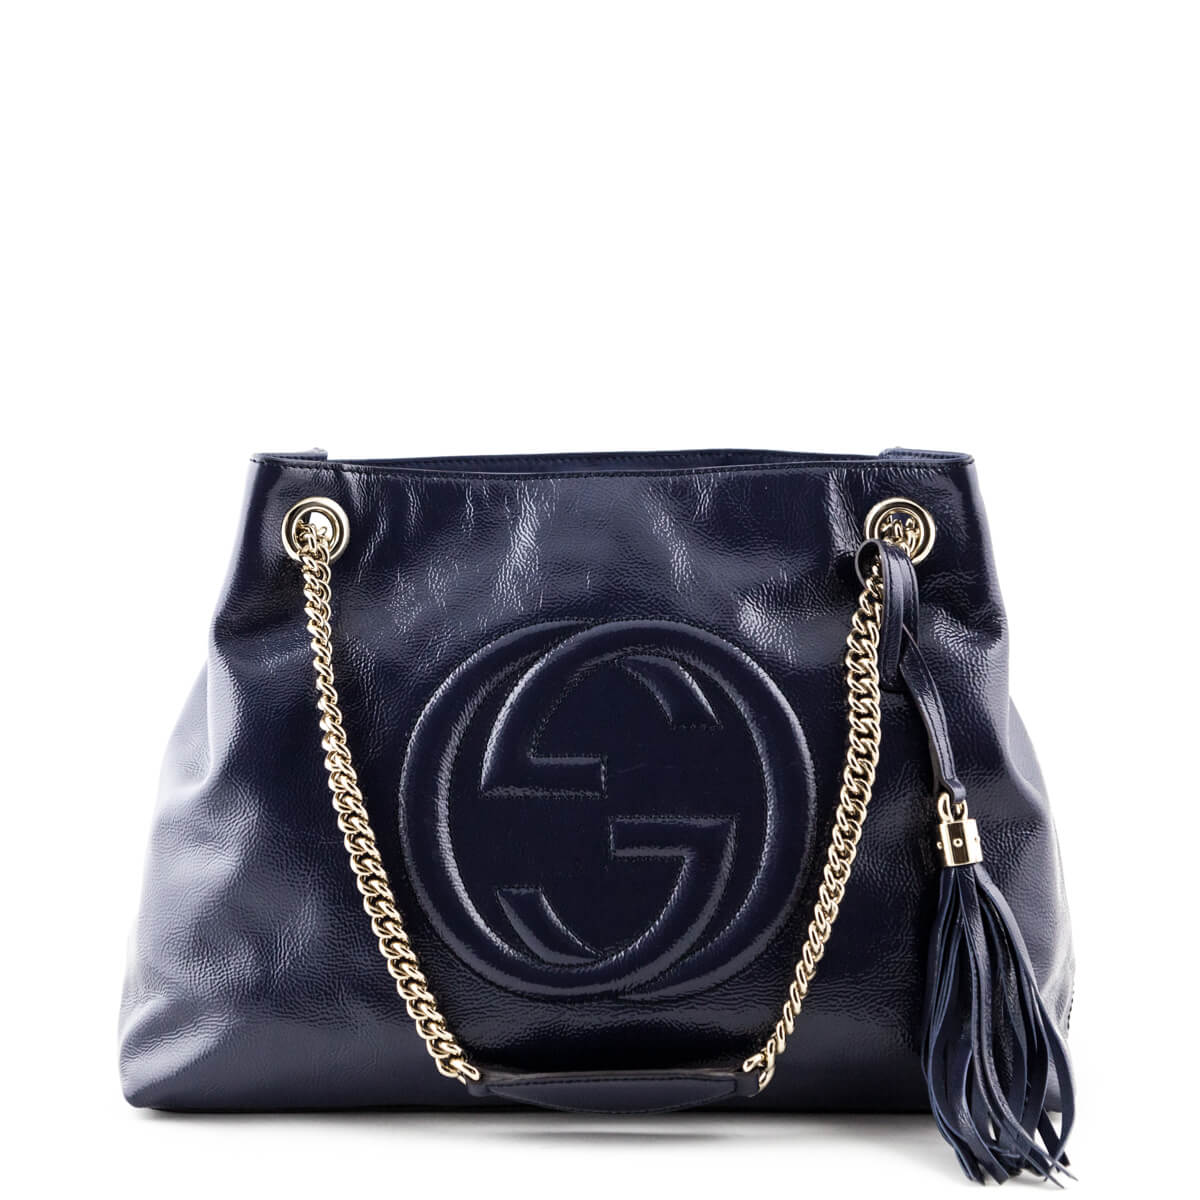 a85241c7e70 Gucci Midnight Blue Patent Medium Soho Shoulder Bag - LOVE that BAG -  Preowned Authentic Designer ...